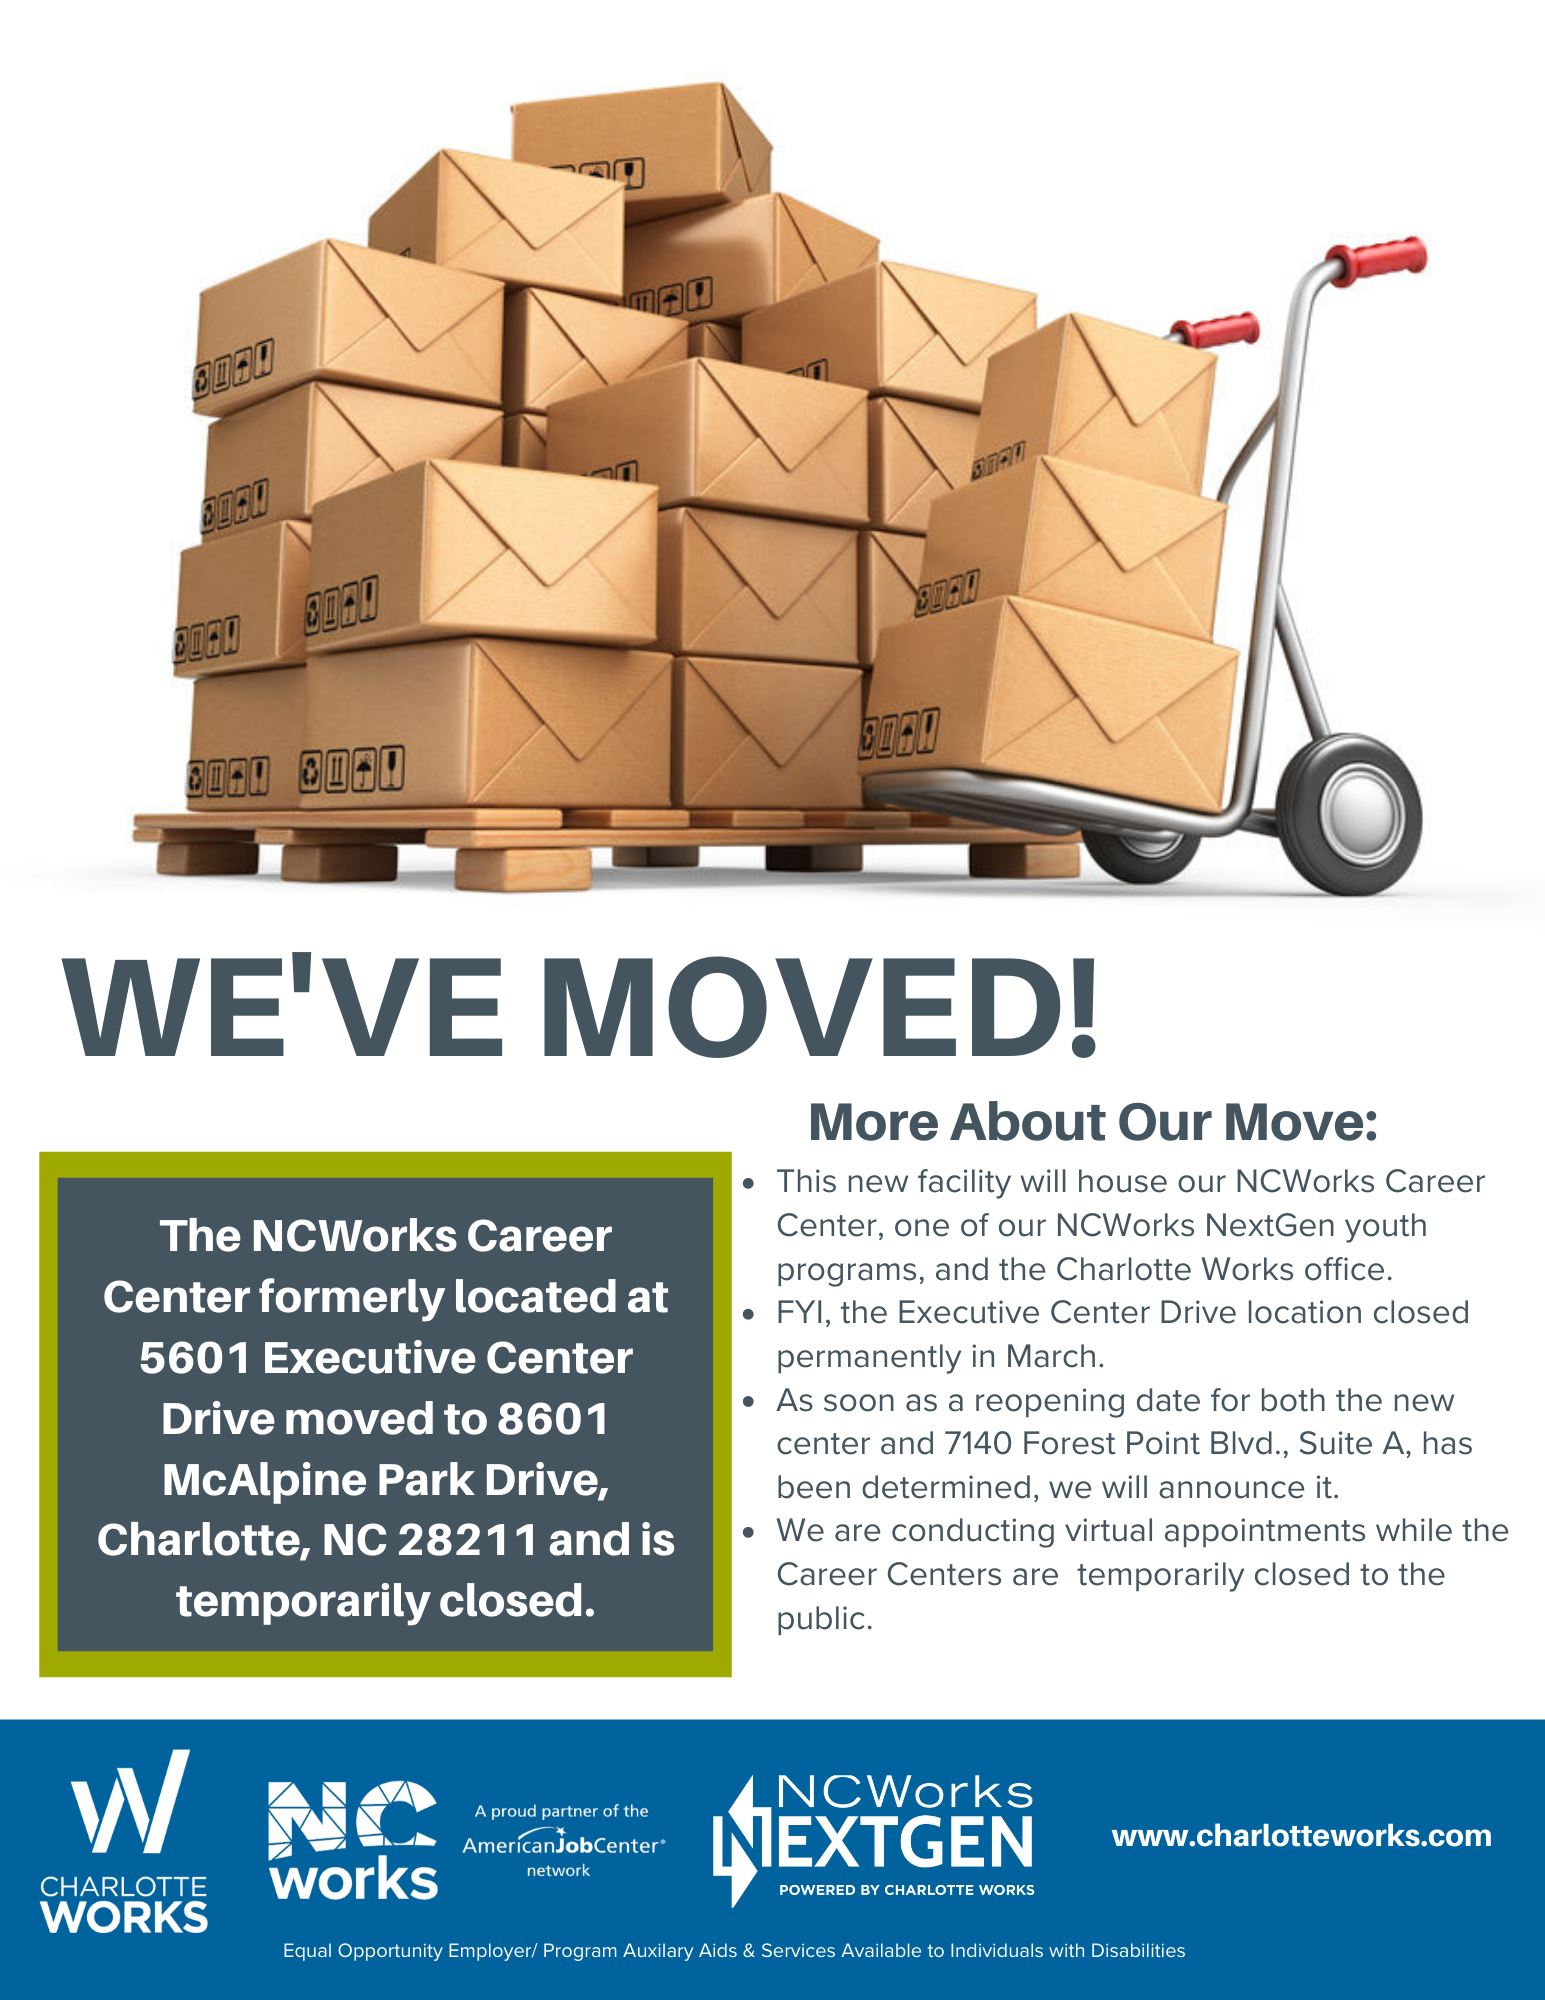 We've Moved: info about Charlotte Works new space.